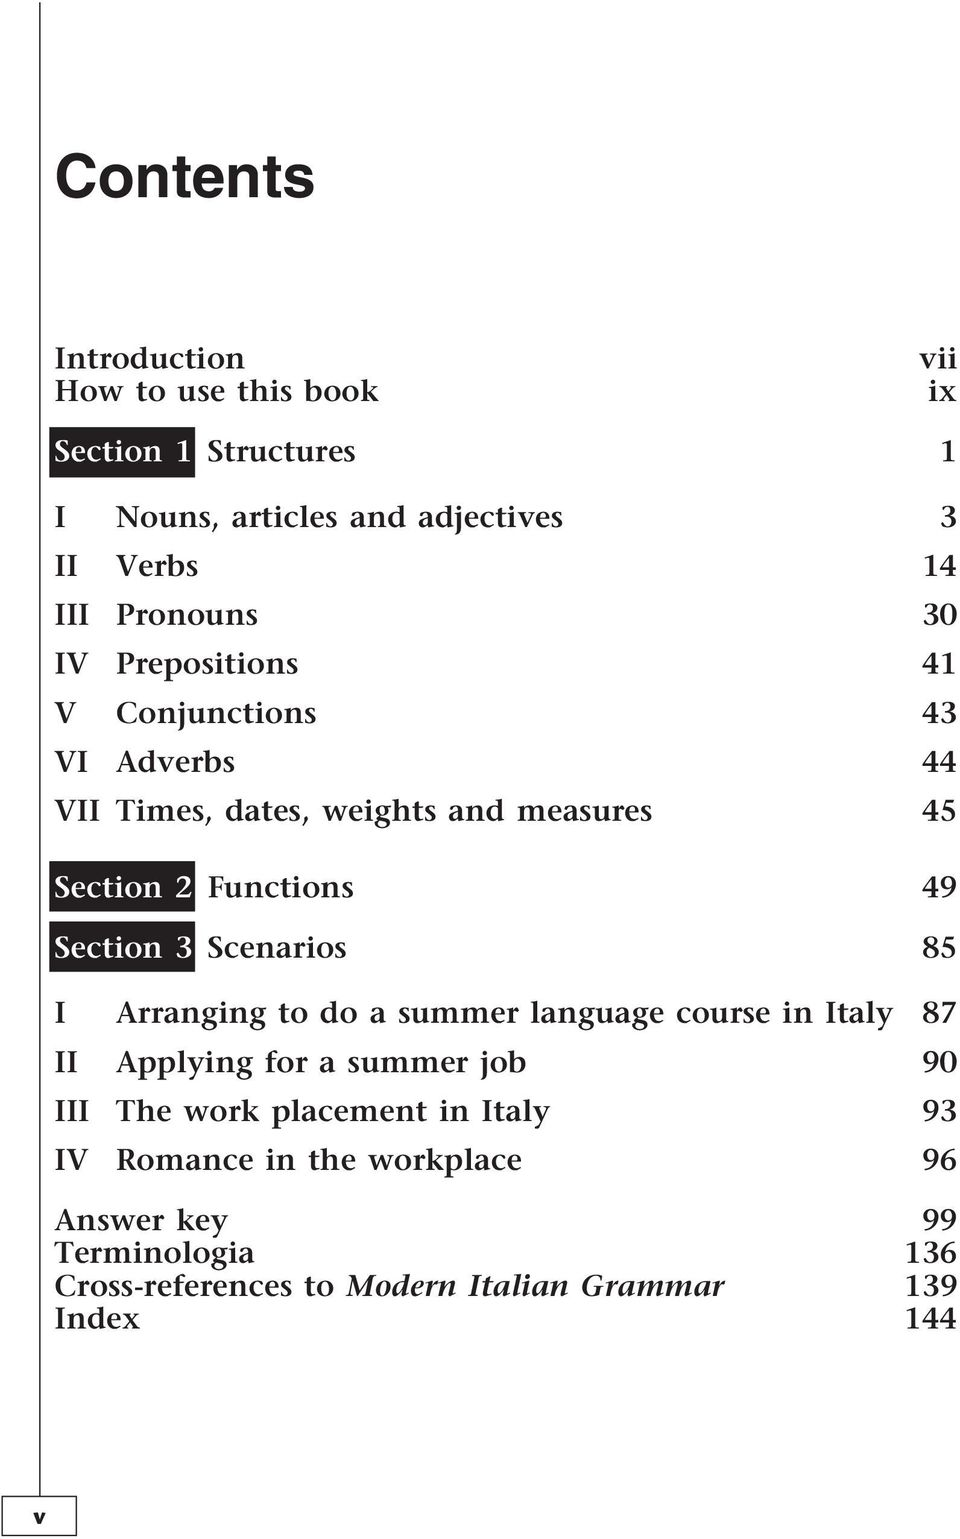 Section 3 Scenarios 85 I Arranging to do a summer language course in Italy 87 II Applying for a summer job 90 III The work